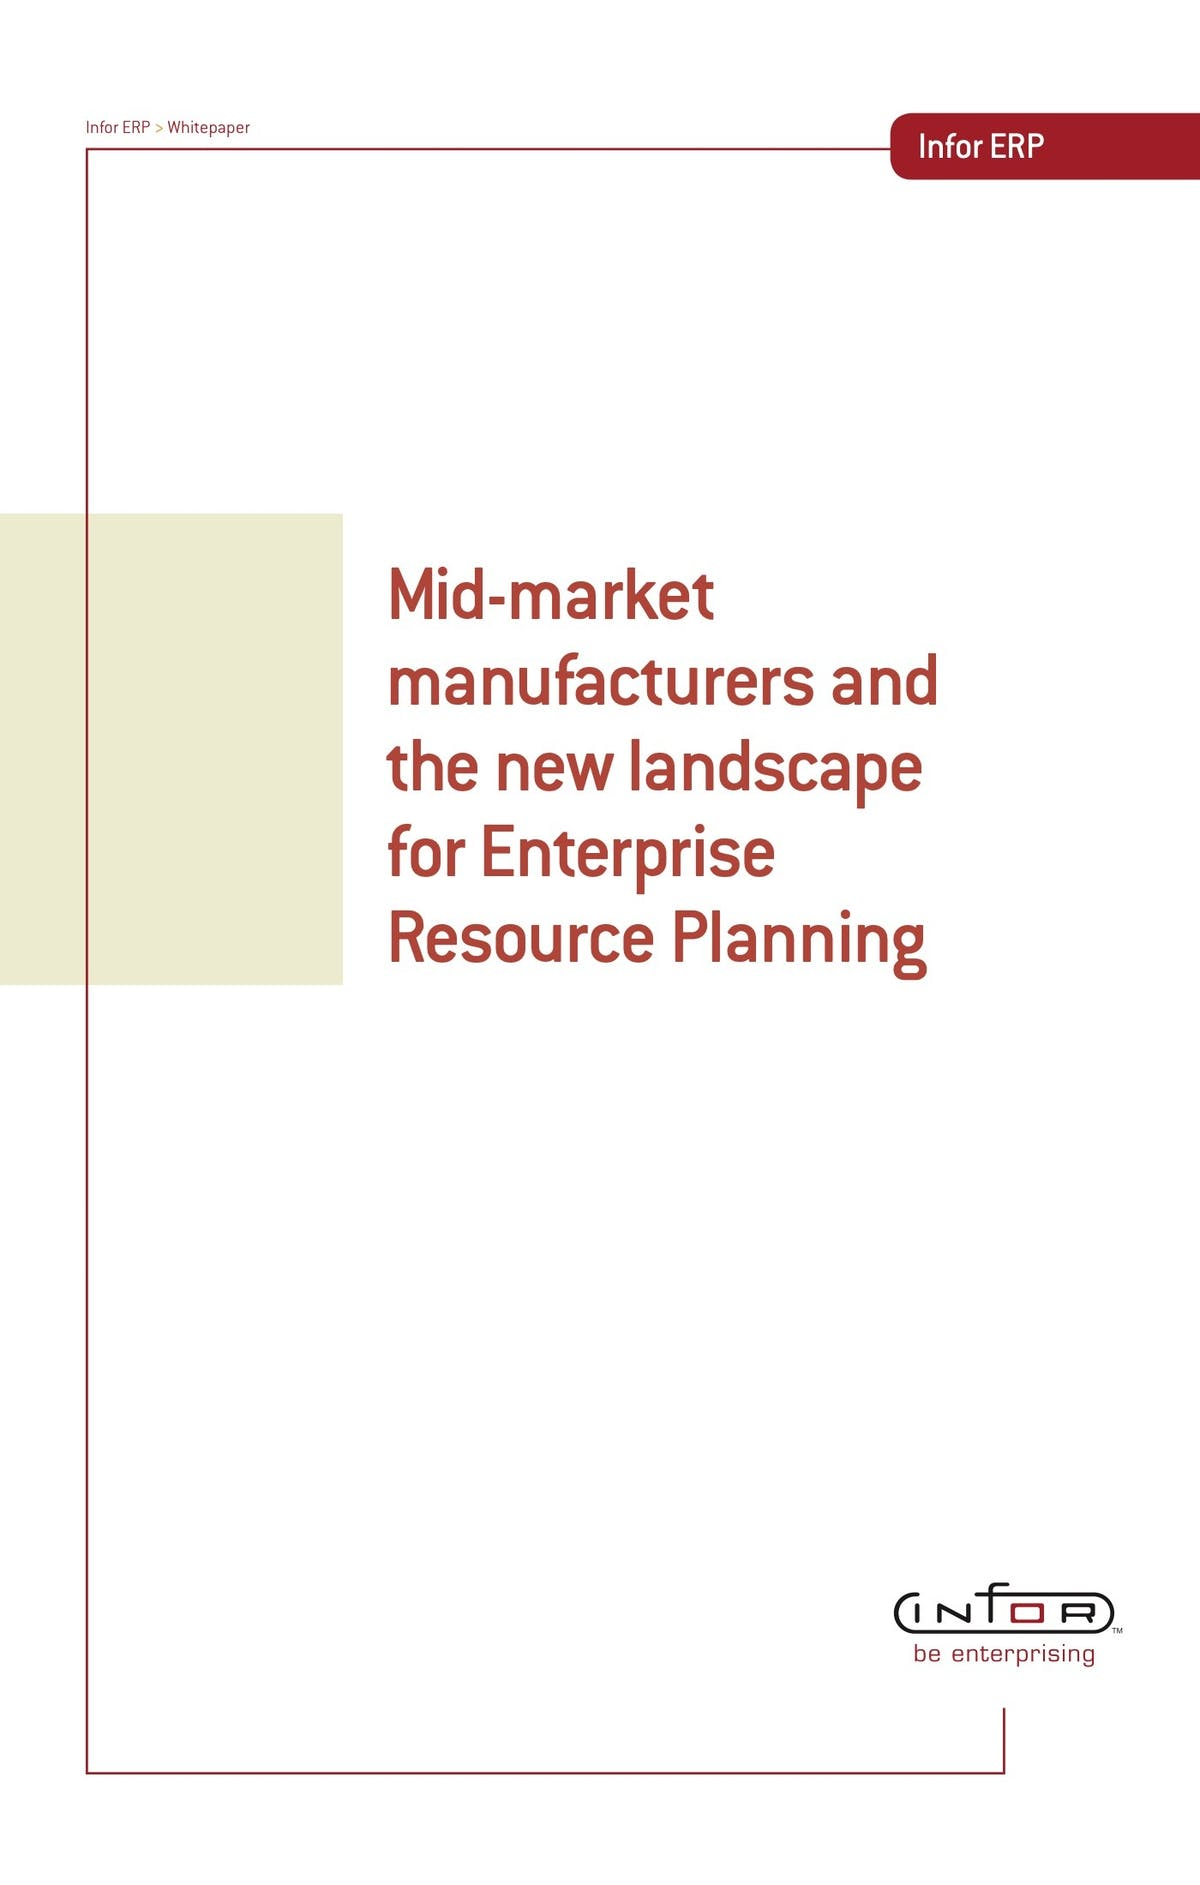 Infor VISUAL White Paper - Mid-market Manufacturers and the New Landscape for Enterprise Resource Planning